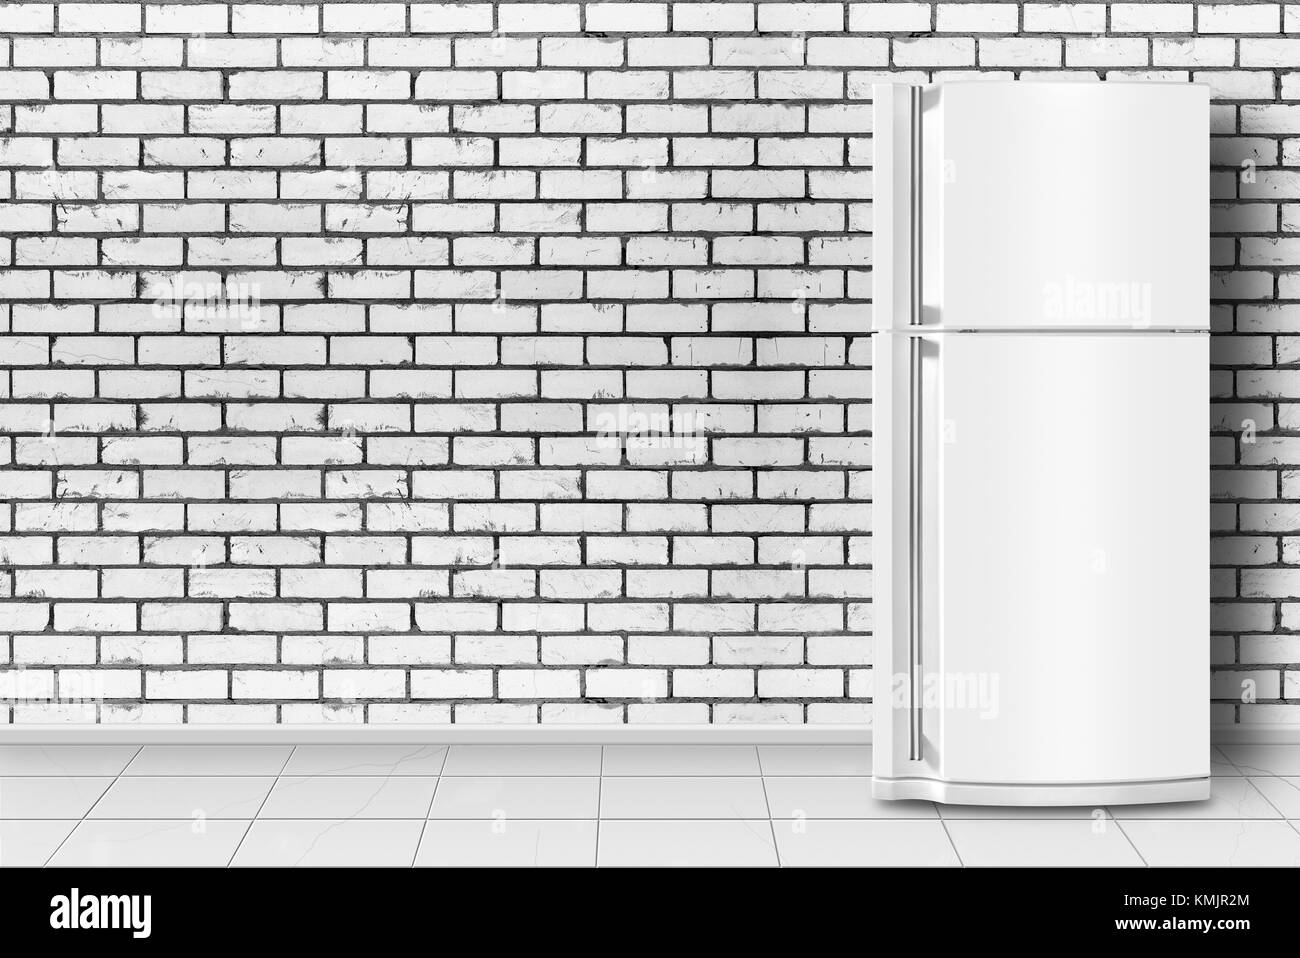 Major appliance - Refrigerator in front on a brick wall background Stock Photo